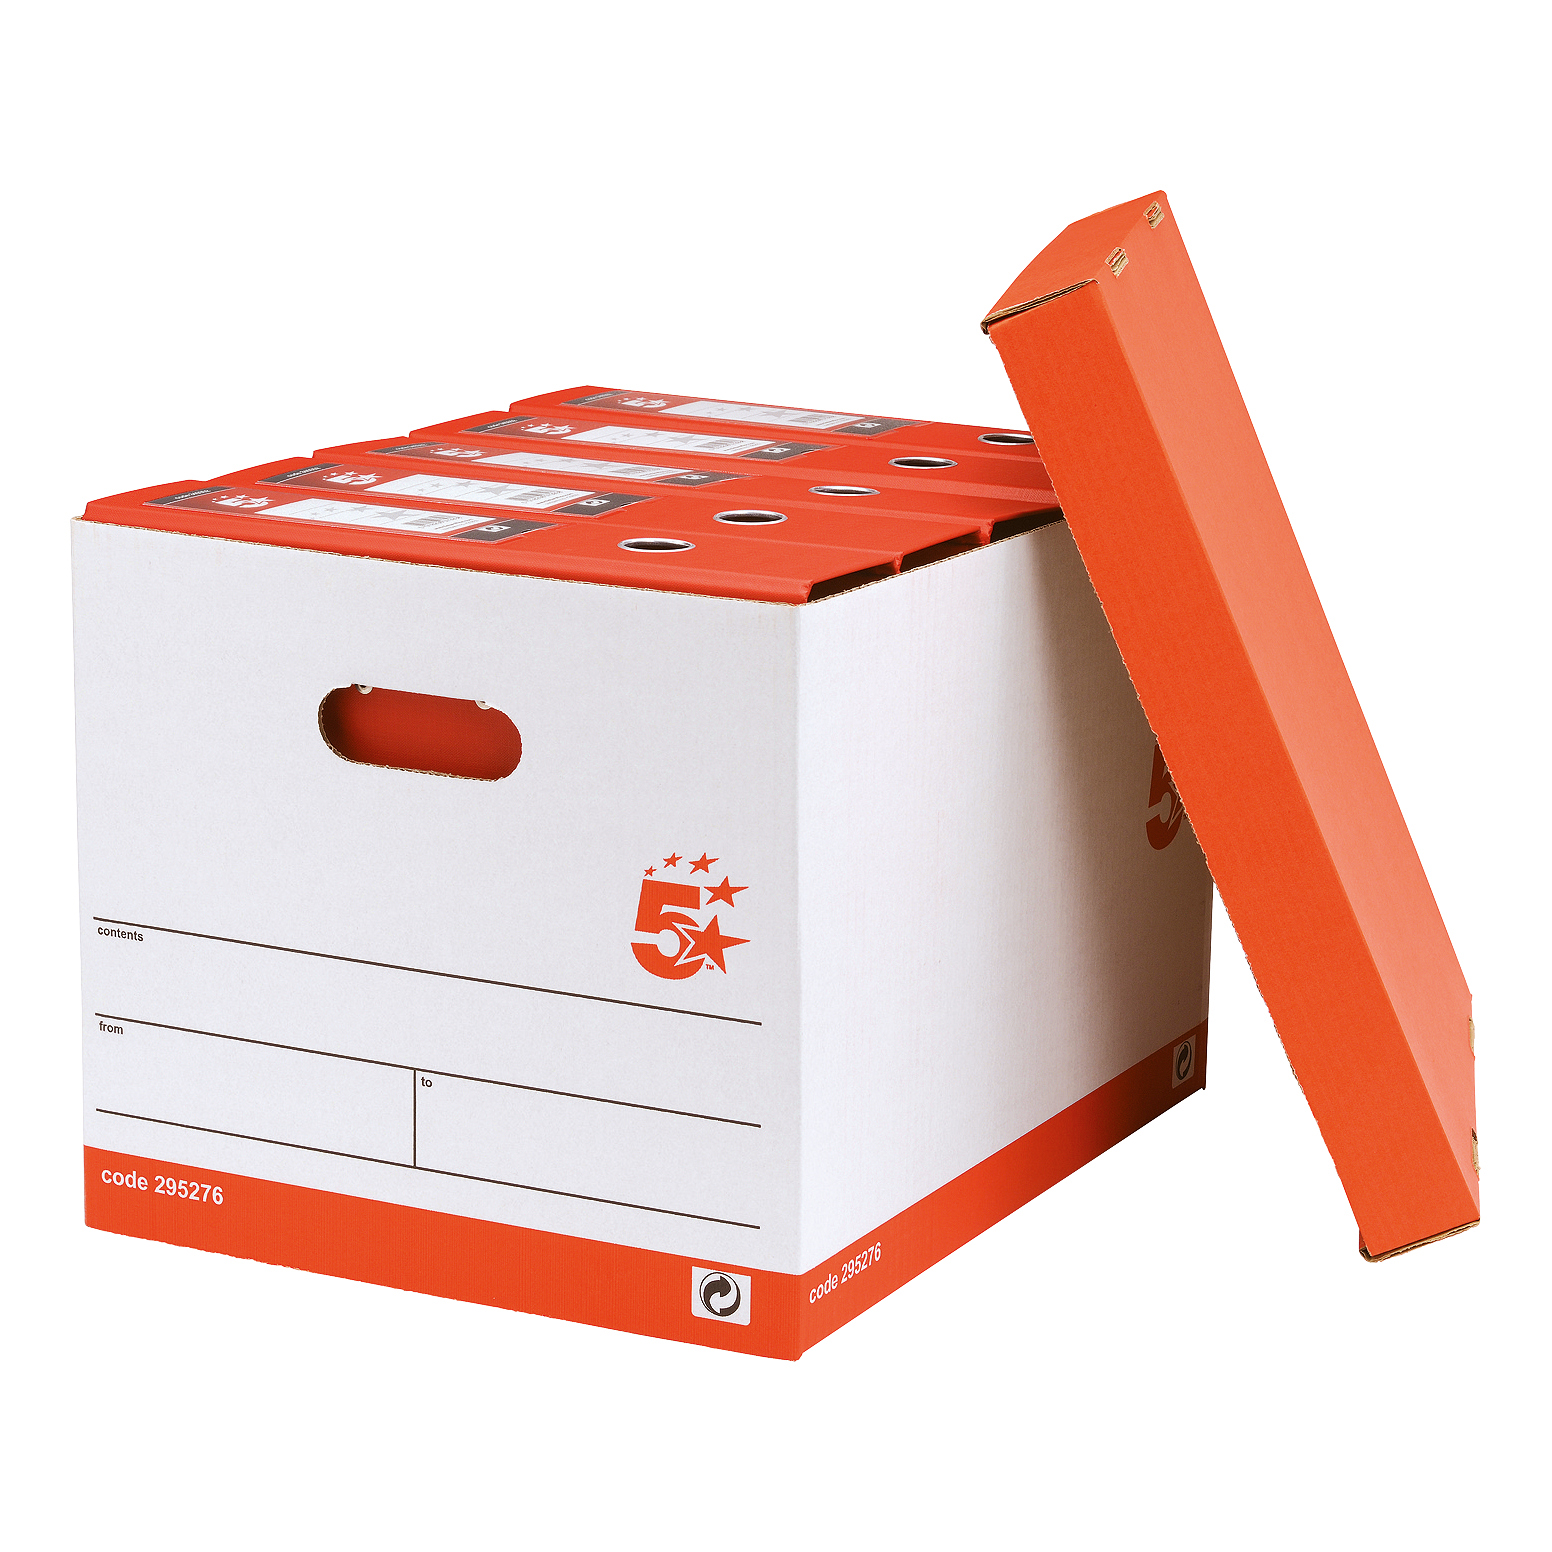 5 Star Office FSC Storage Box with Lid Self-assembly W321xD392xH291mm Red & White [Pack 10]